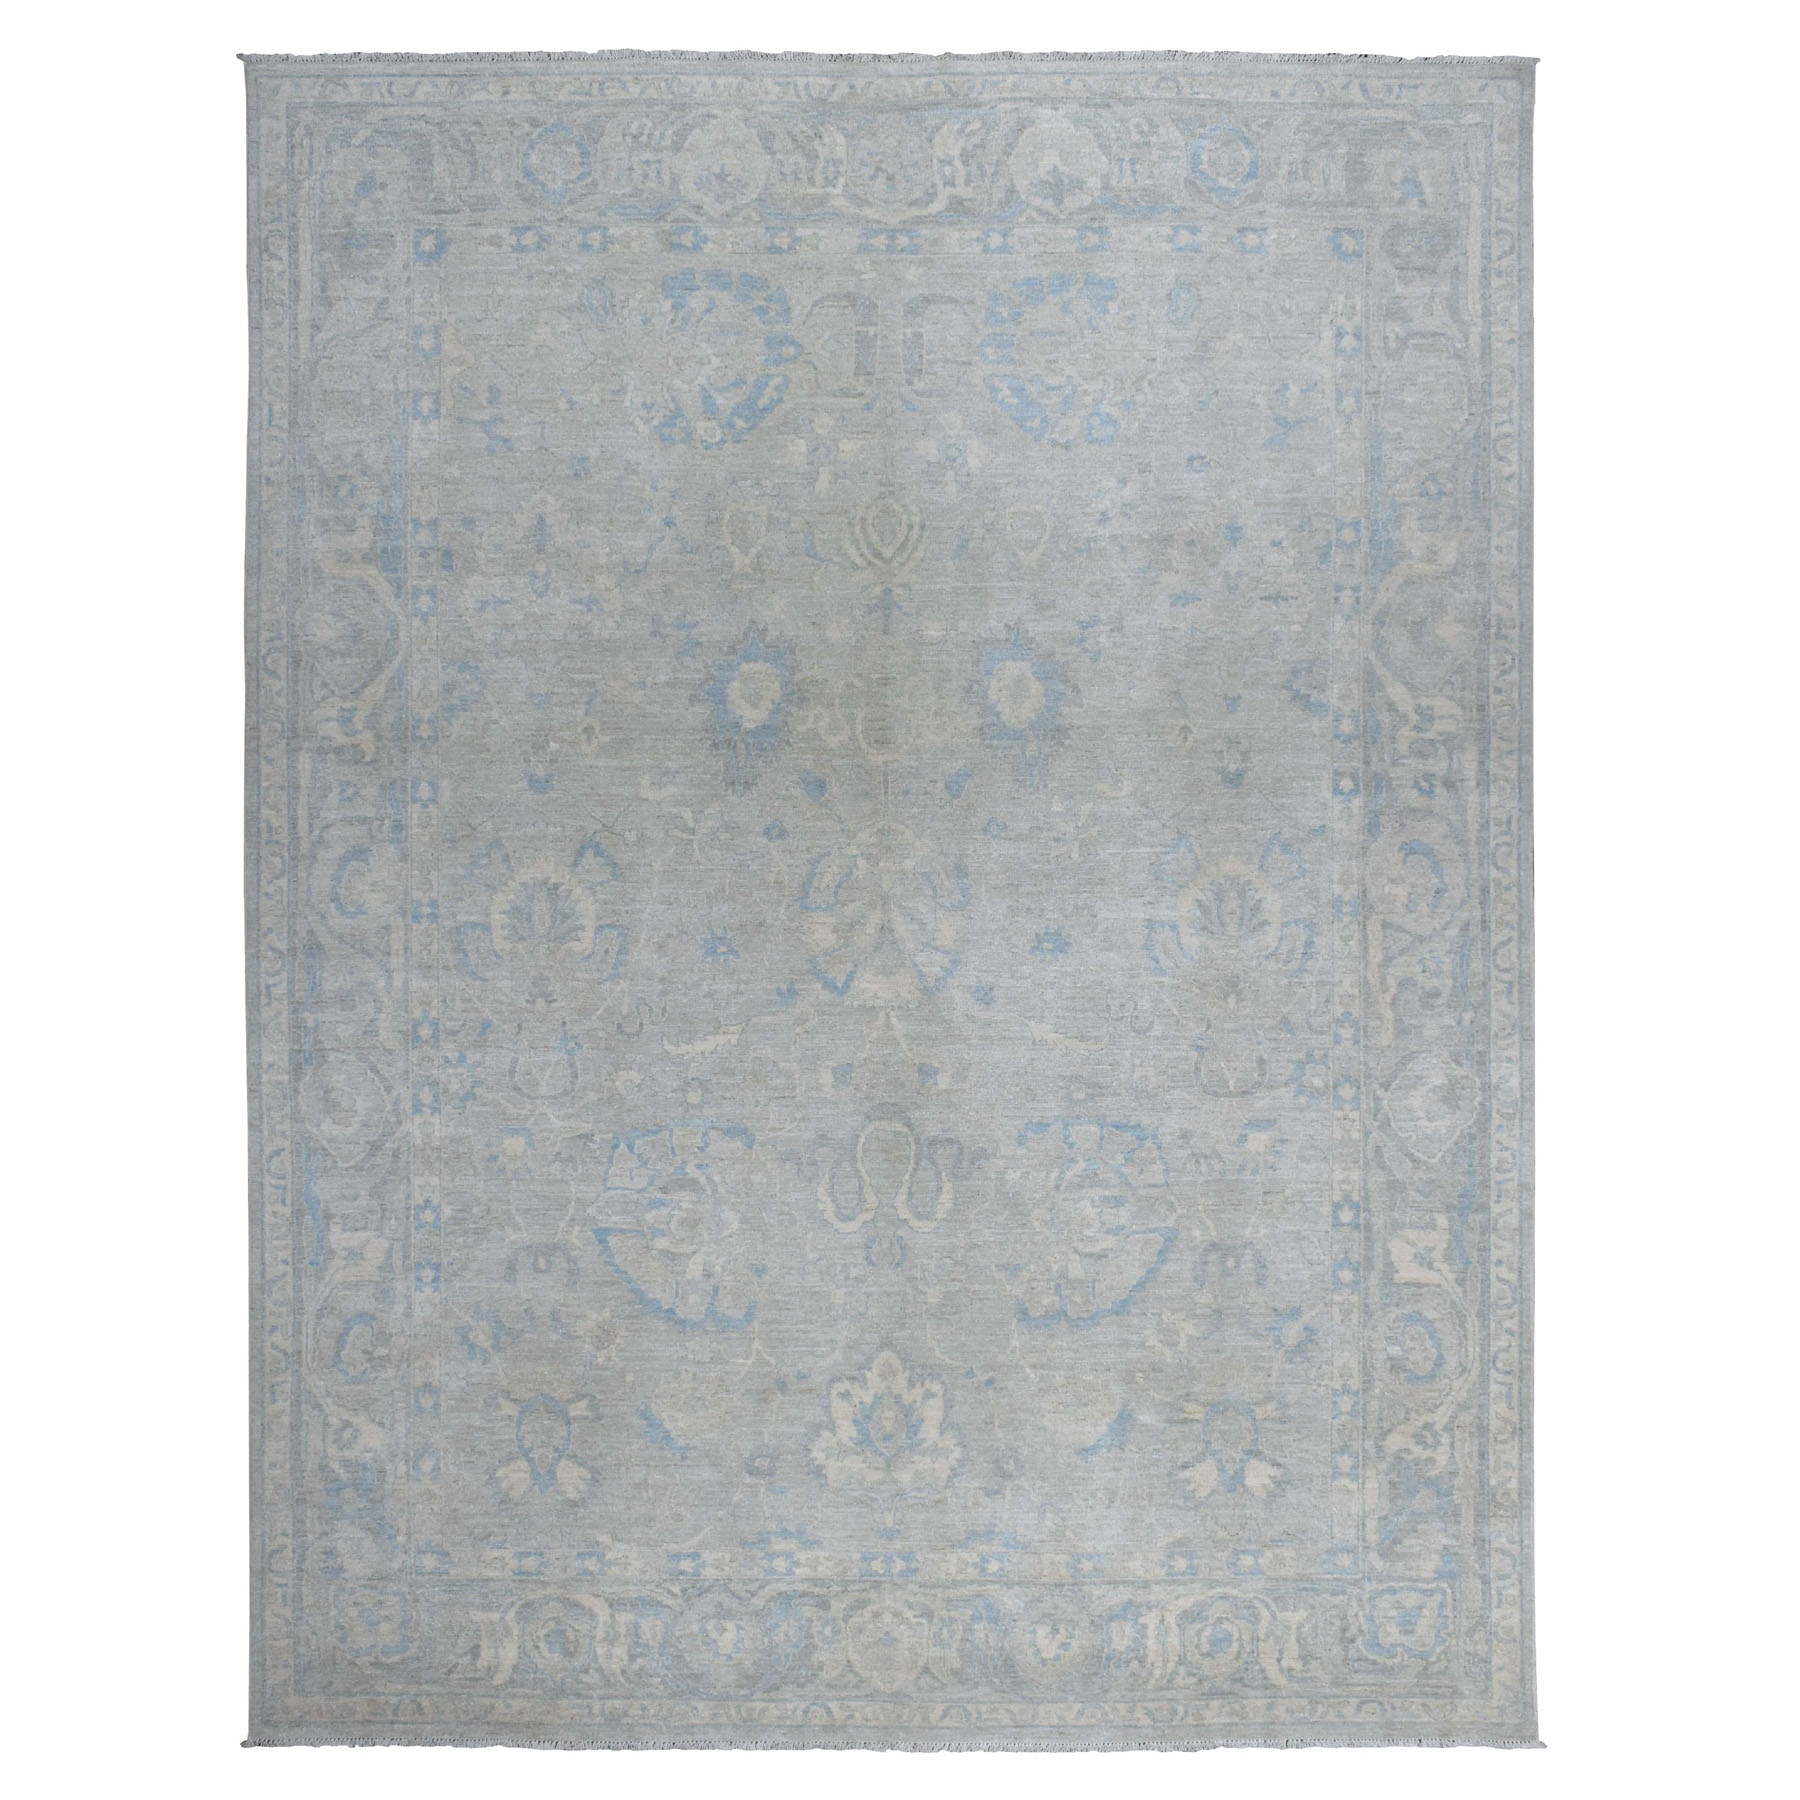 9'x12' Gray Stone Wash Peshawar Pure Wool Hand Knotted Oriental Rug